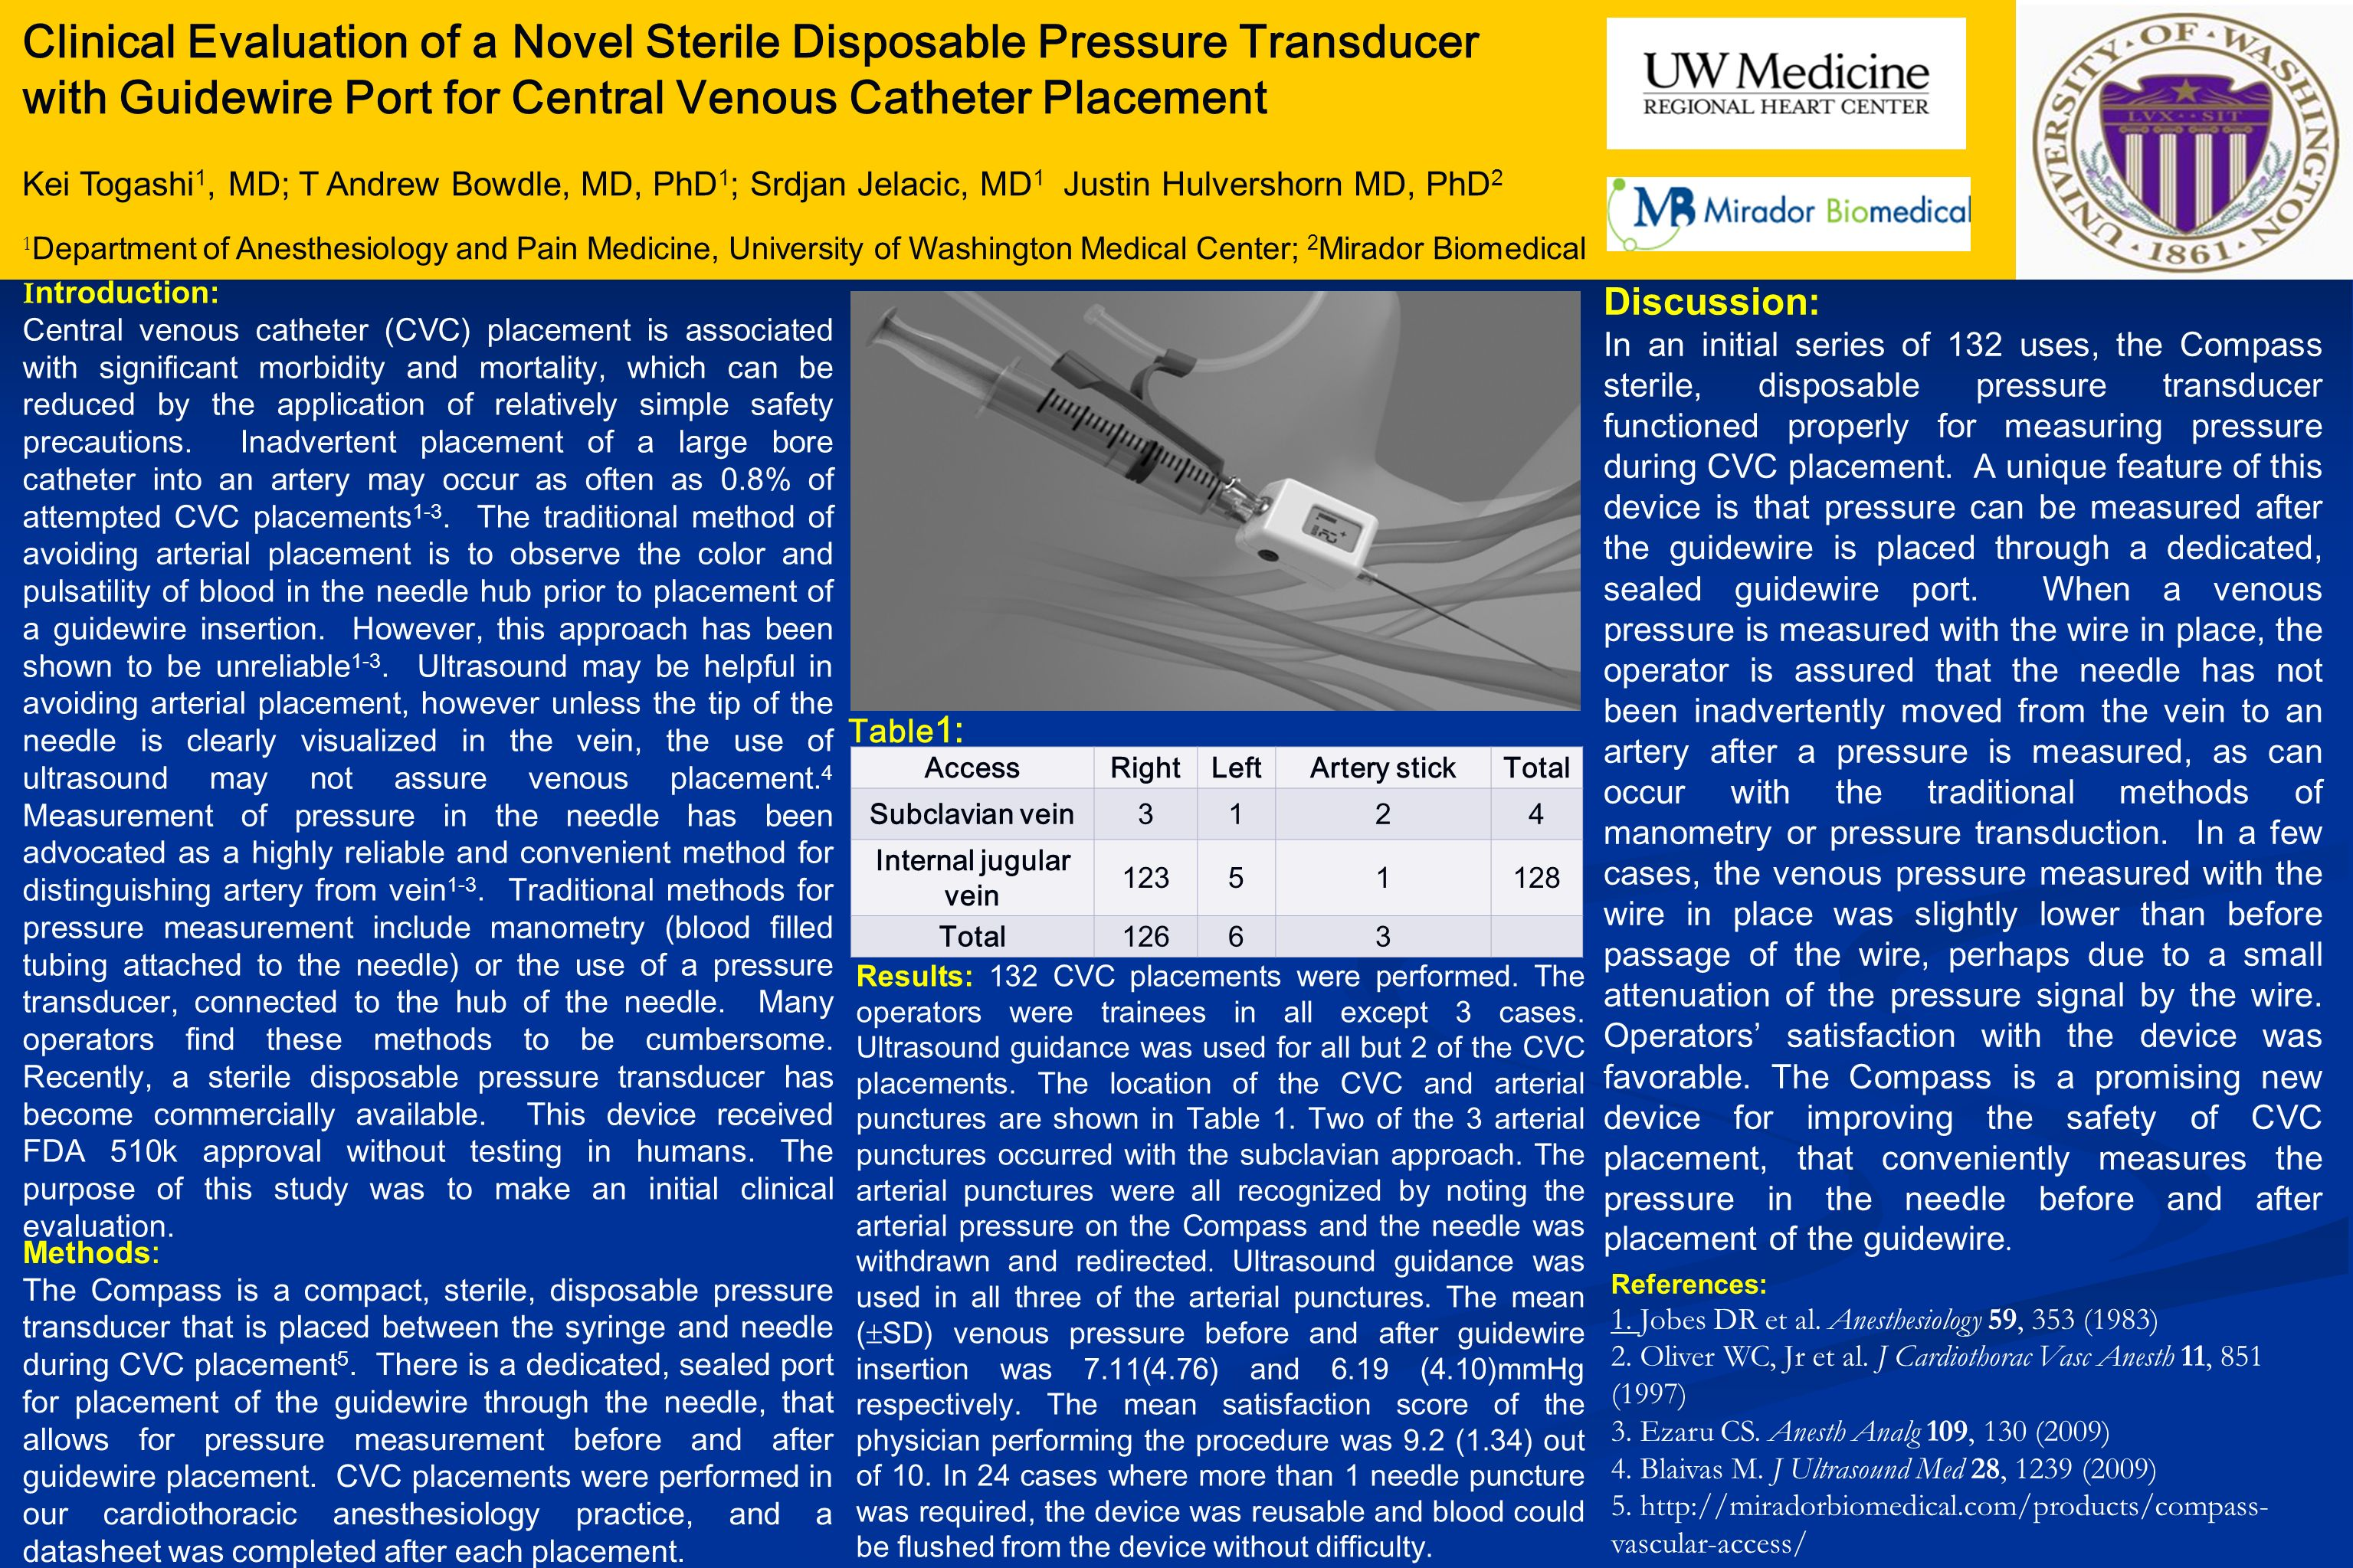 Clinical Evaluation of a Novel Sterile Disposable Pressure Transducer with Guidewire Port for Central Venous Catheter Placement Kei Togashi 1, MD; T A